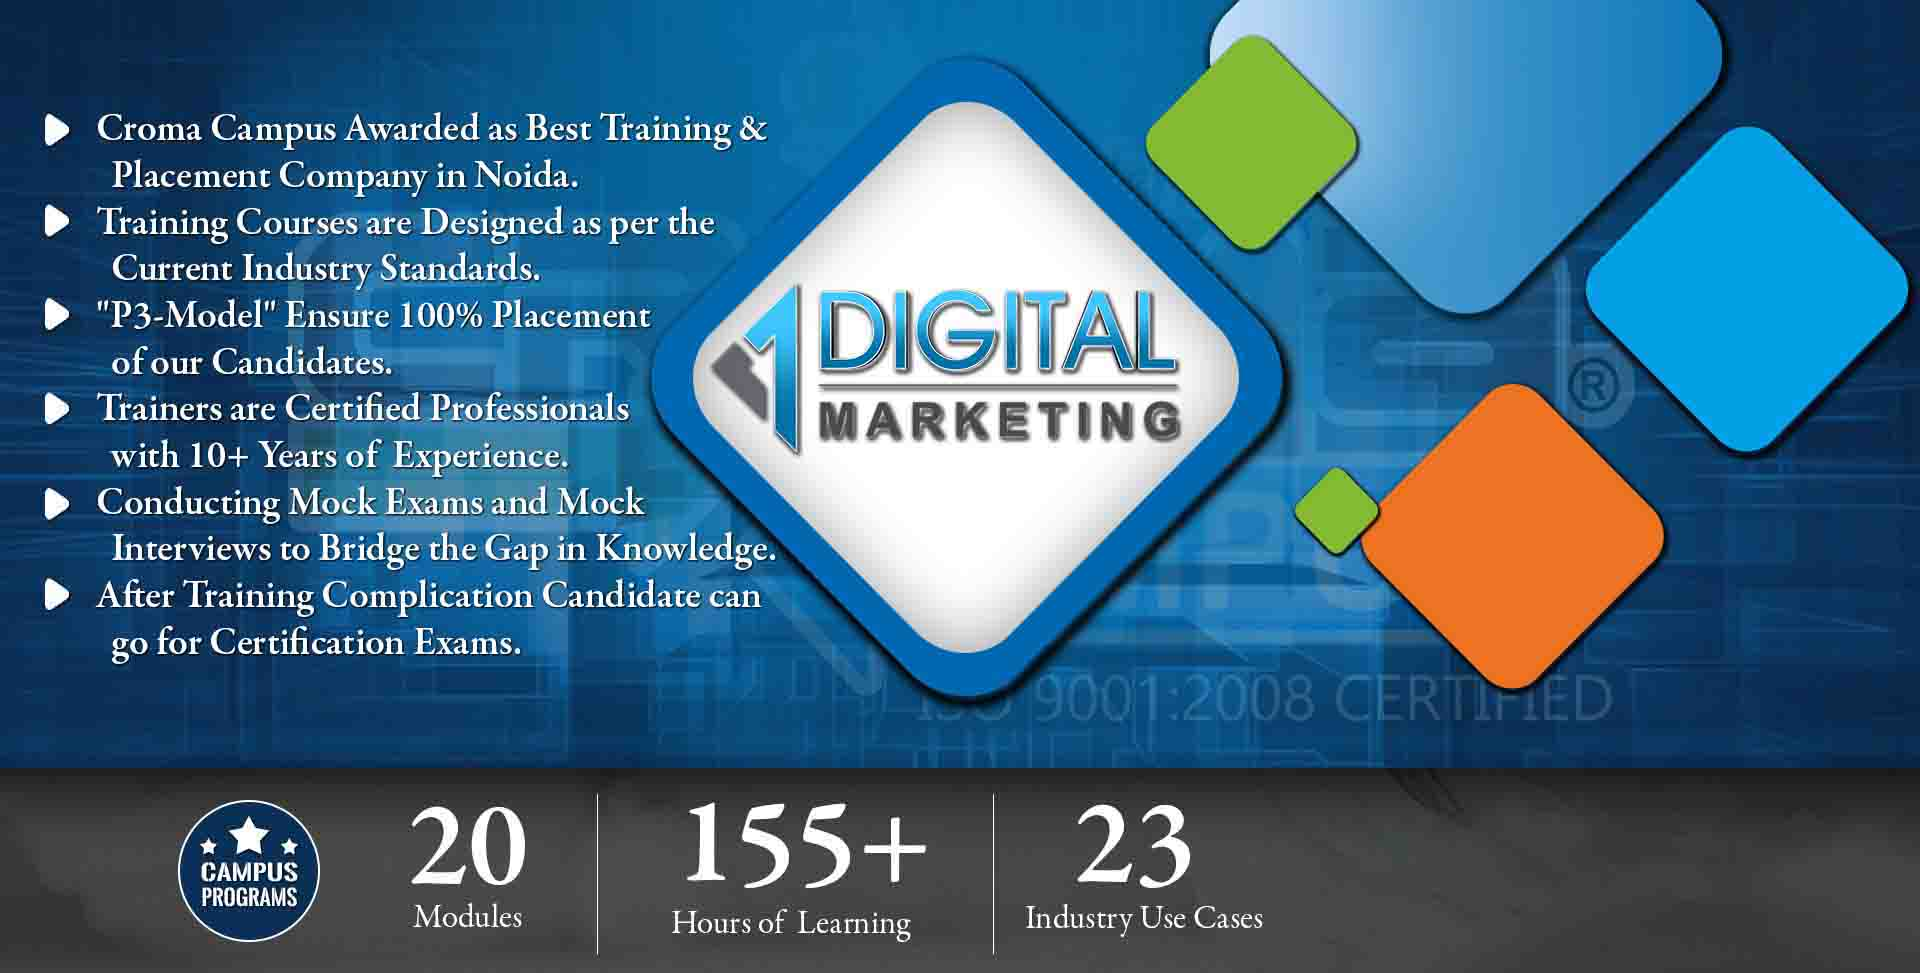 Online Digital Marketing Training in India- Croma Campus